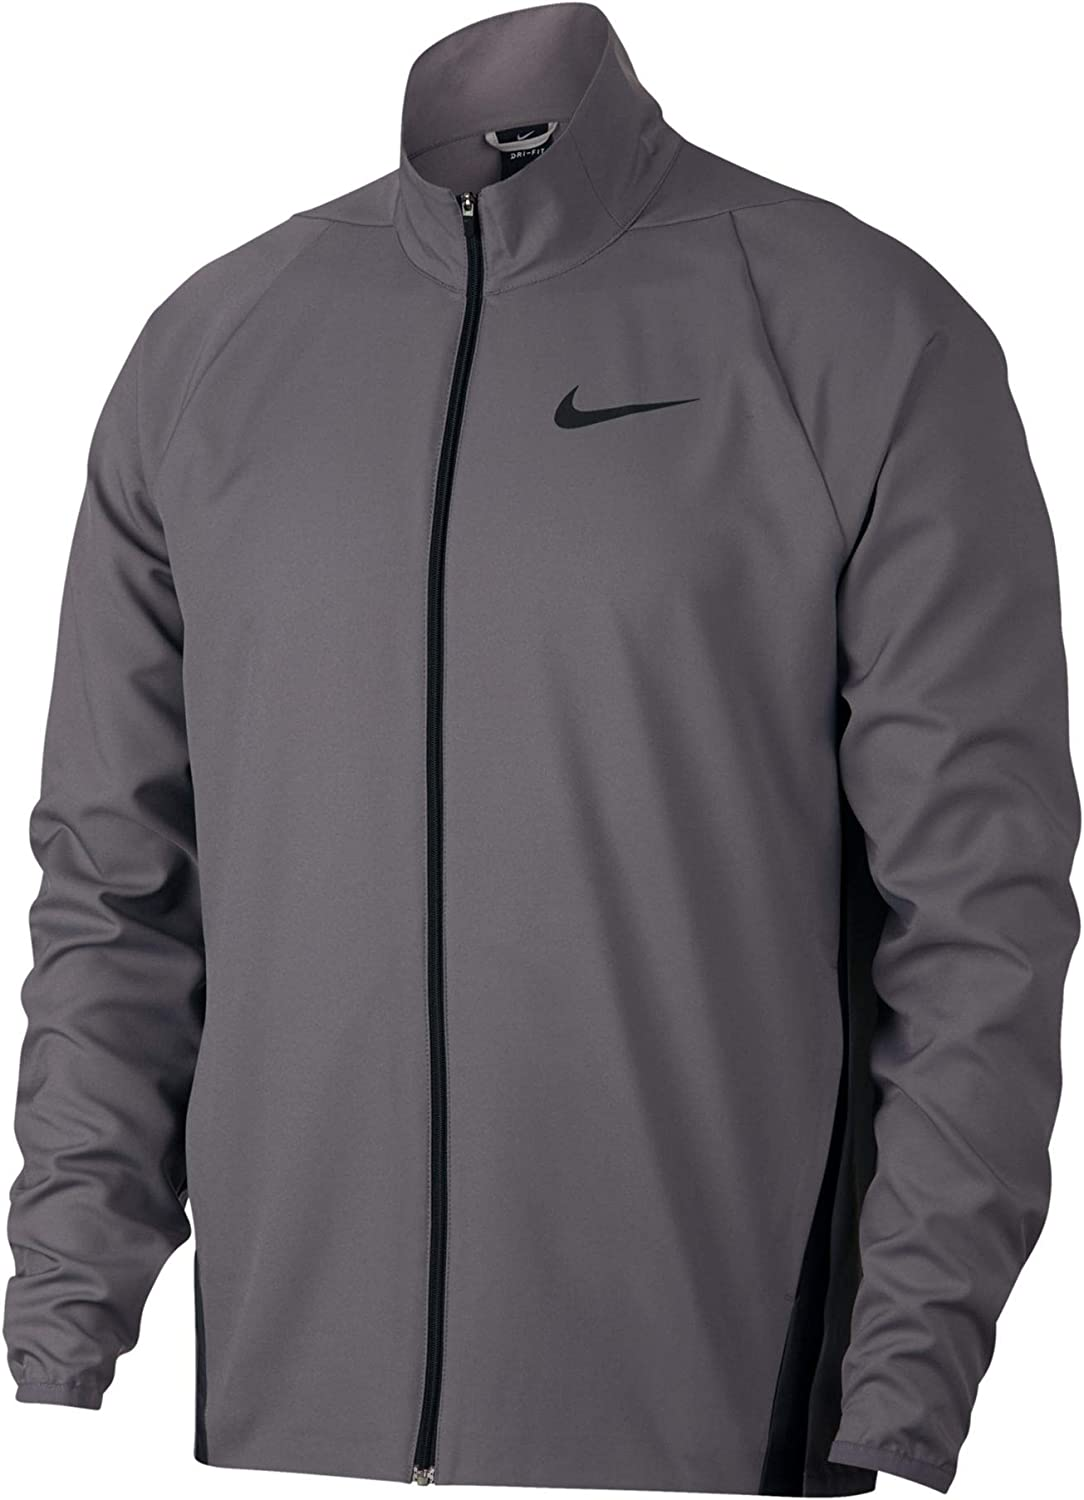 Nike Mens Standard Fit Training Athletic Jacket Gray S